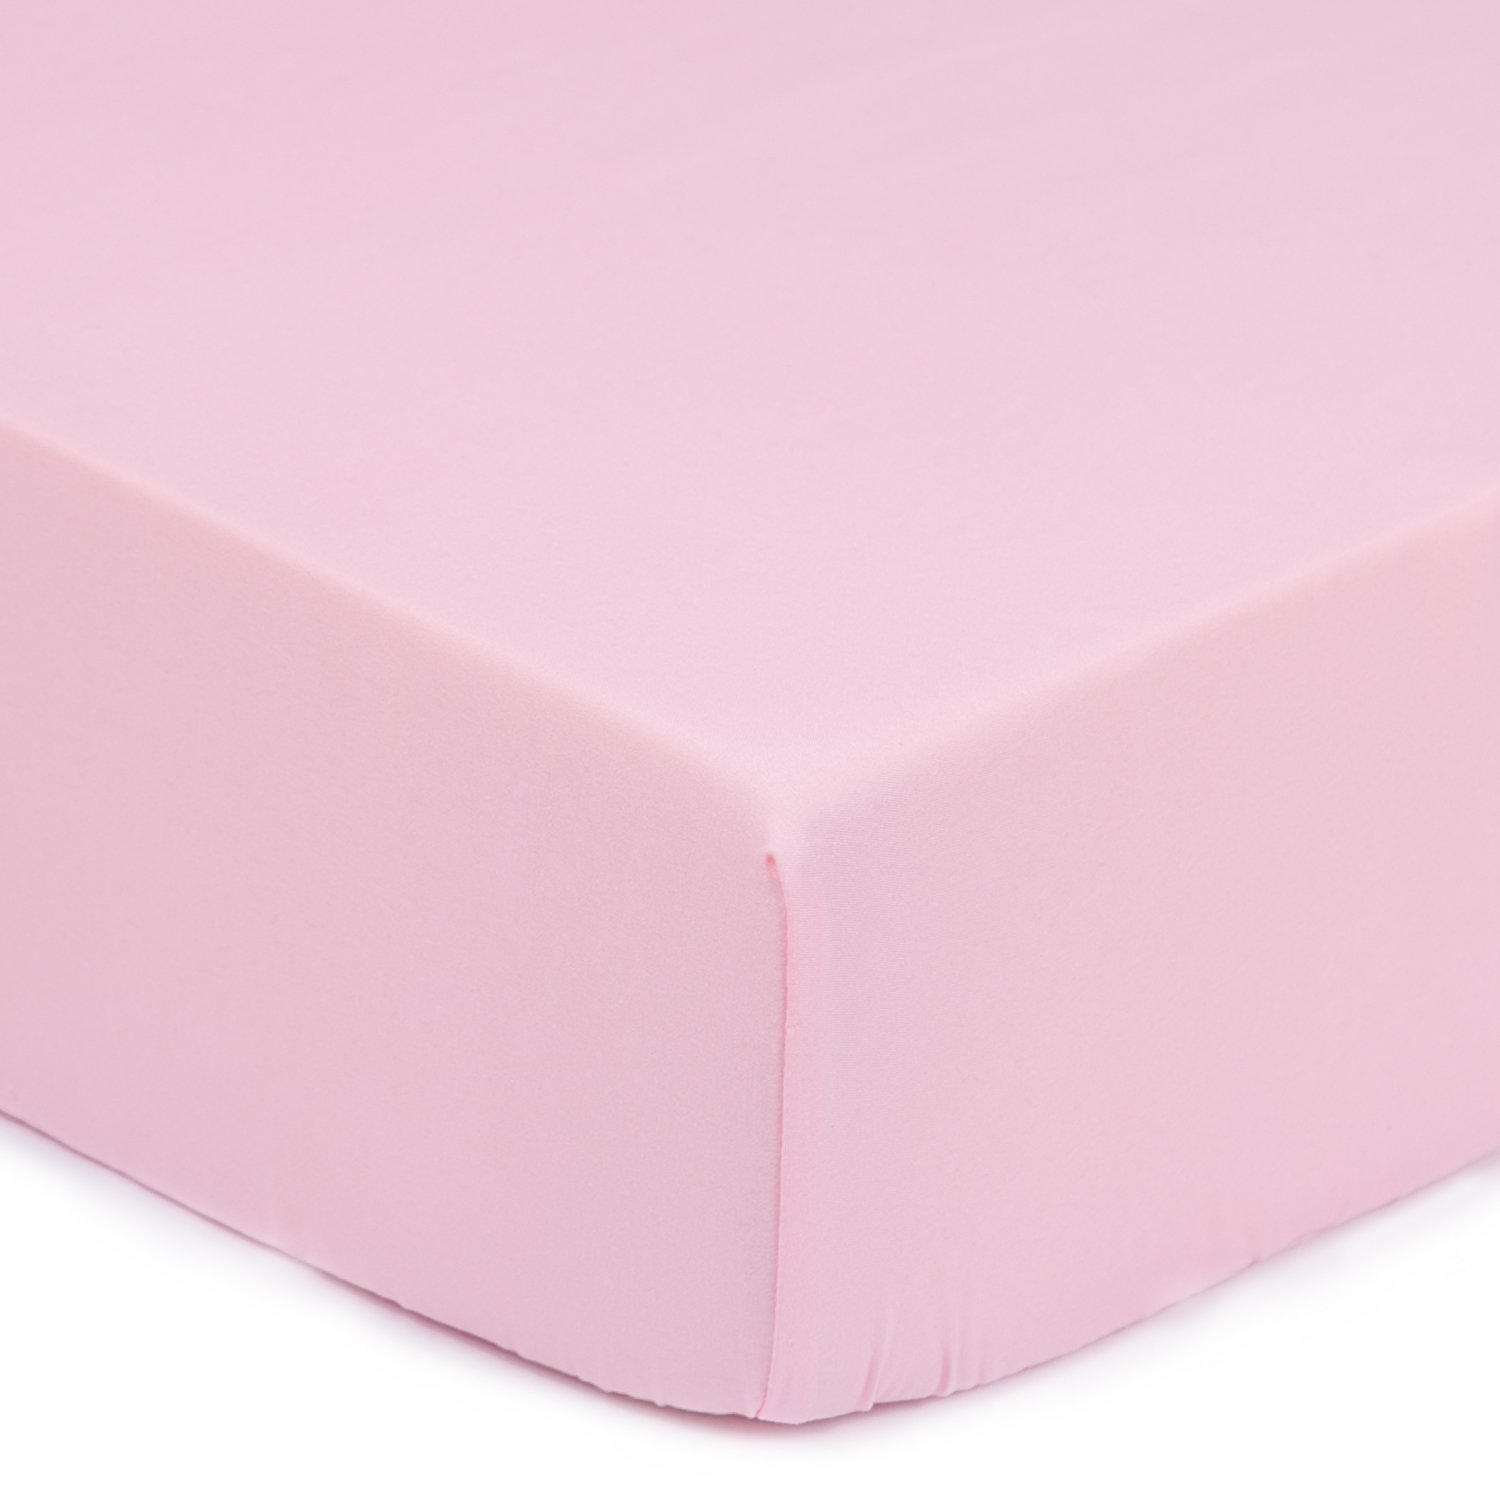 TILLYOU Silky Soft Microfiber Crib Sheet, Breathable Cozy Hypoallergenic Baby Sheets for Girls, 28 x 52in Fits Standard Crib & Toddler Mattress, Jade Pink